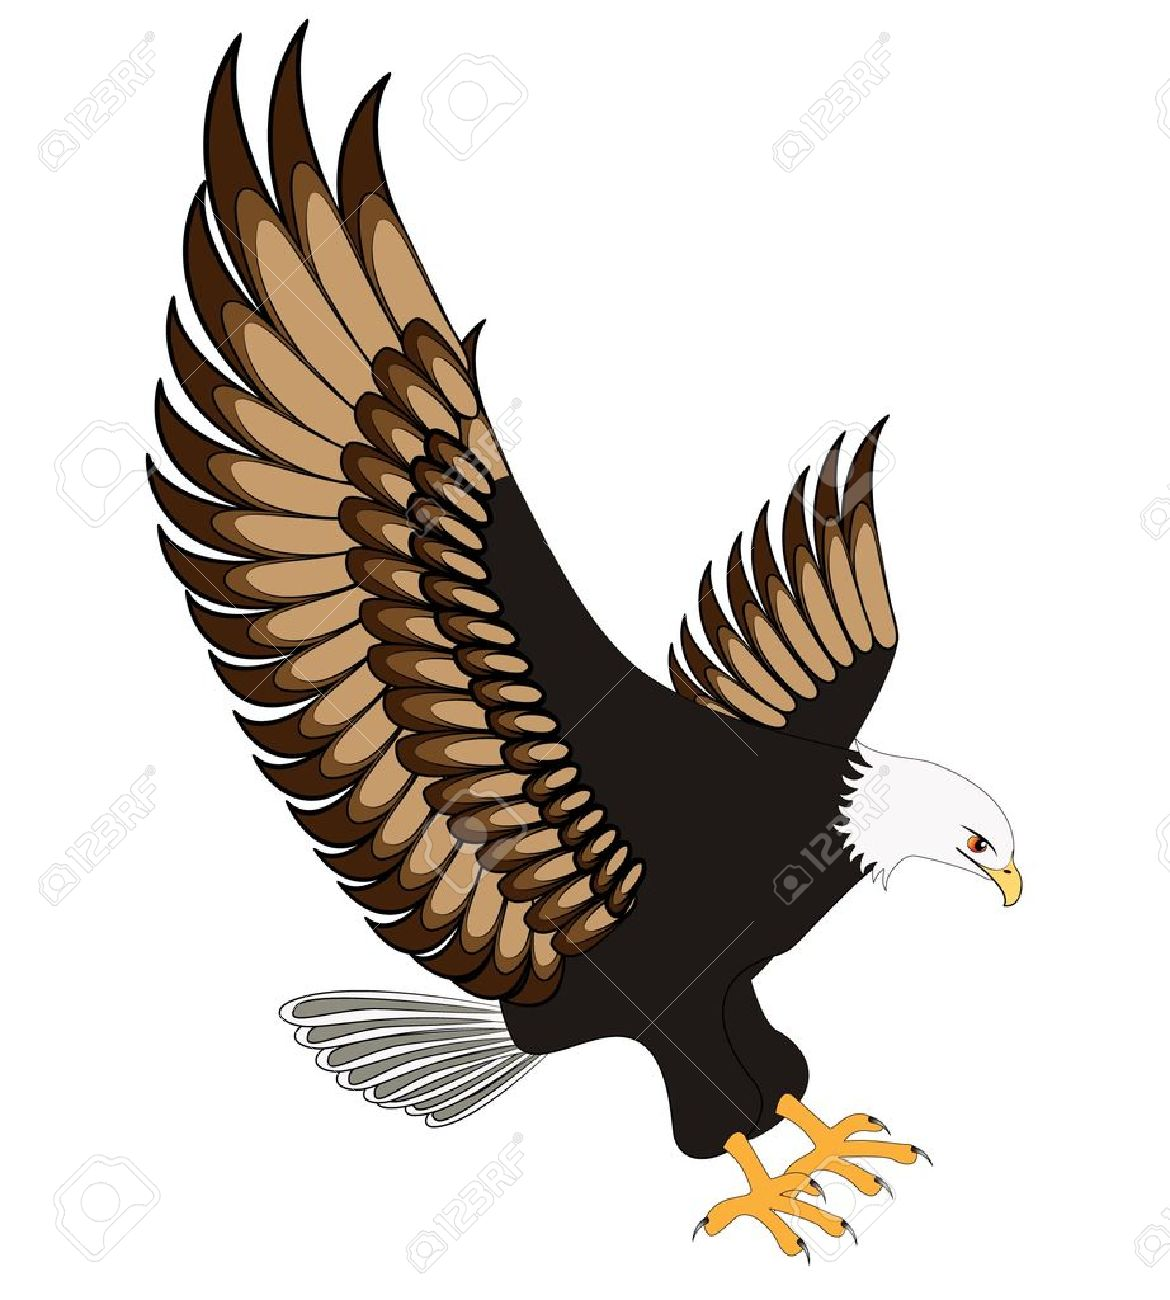 Hawk flying with wings up clipart graphic freeuse stock Flying Hawk Drawing at PaintingValley.com | Explore collection of ... graphic freeuse stock